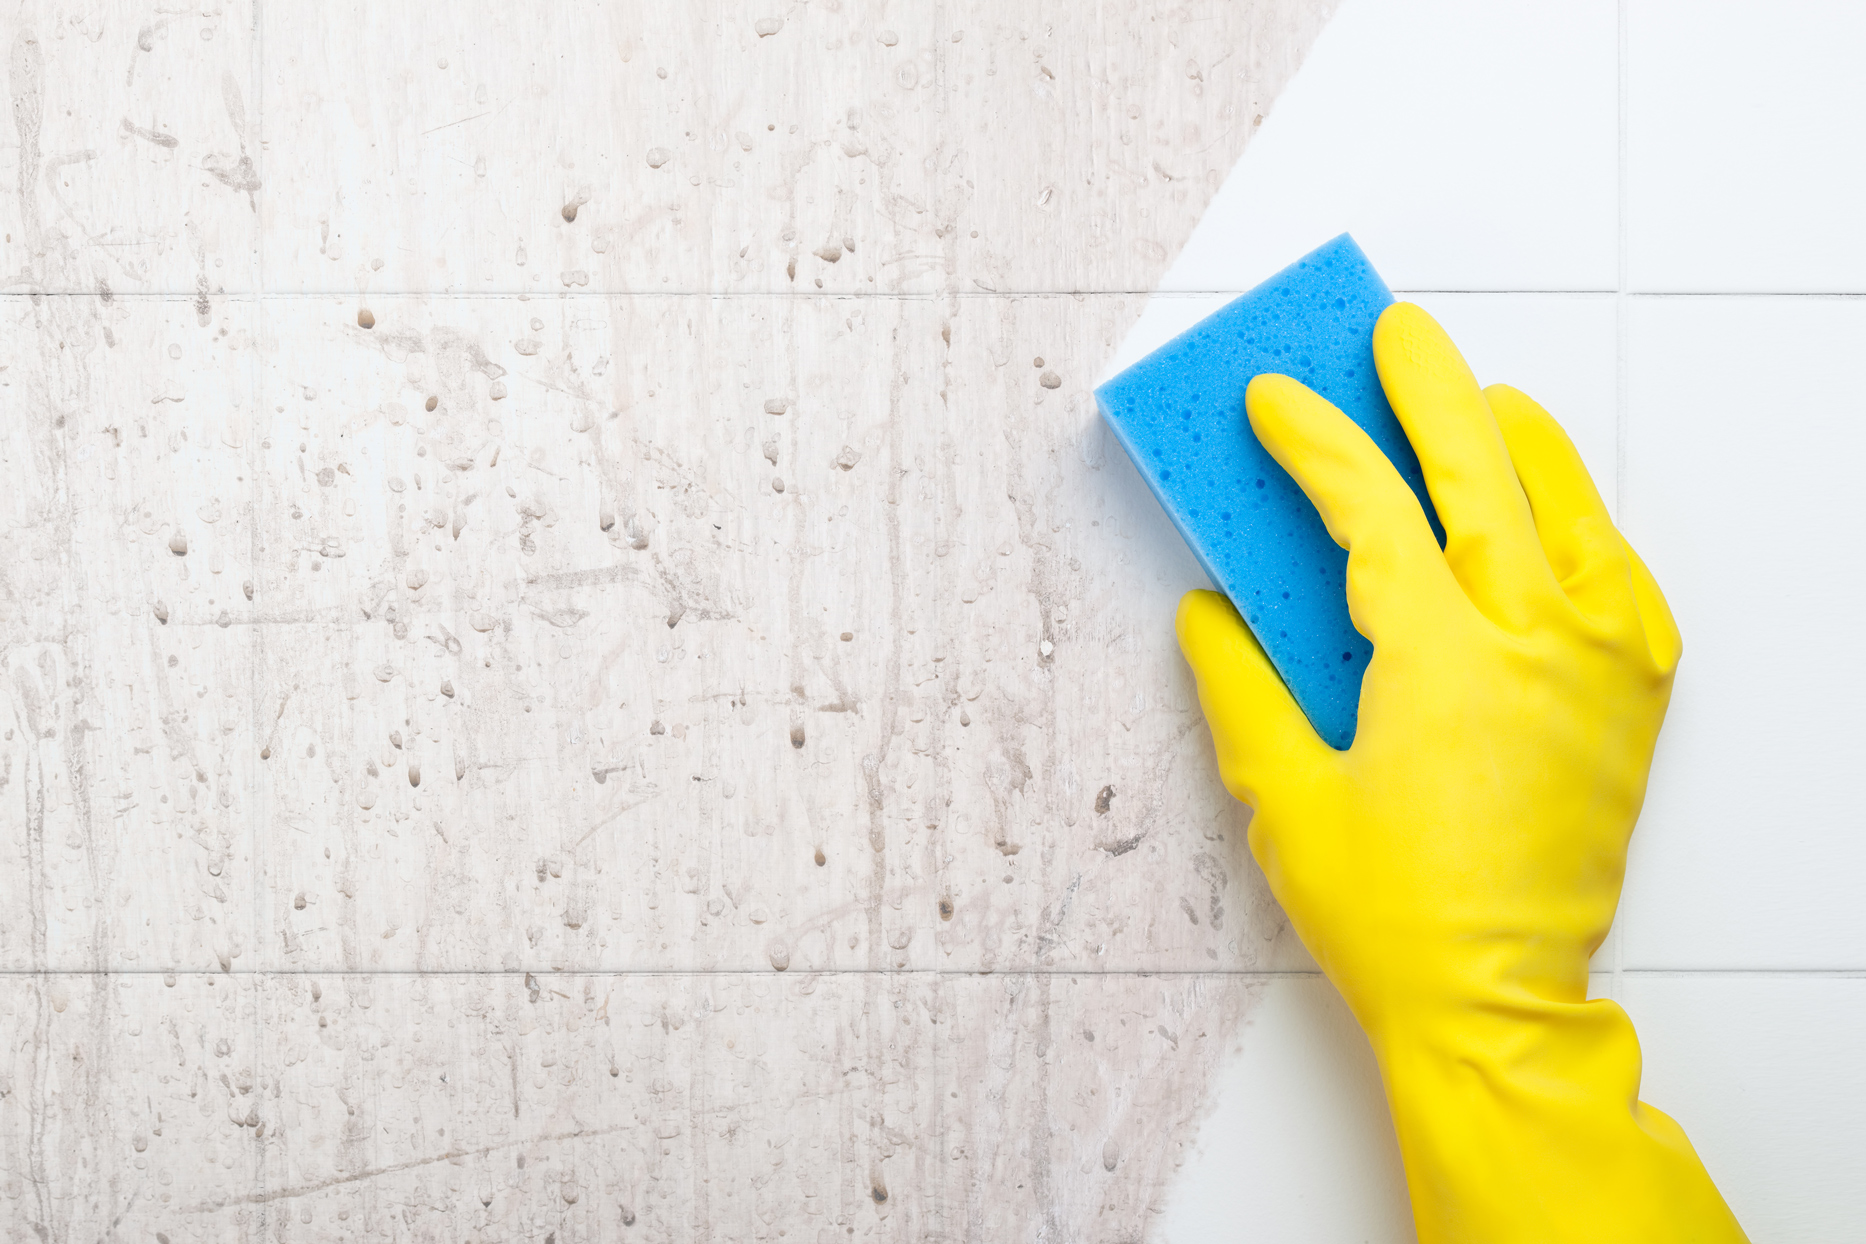 yellow gloved hand cleaning tile with blue sponge